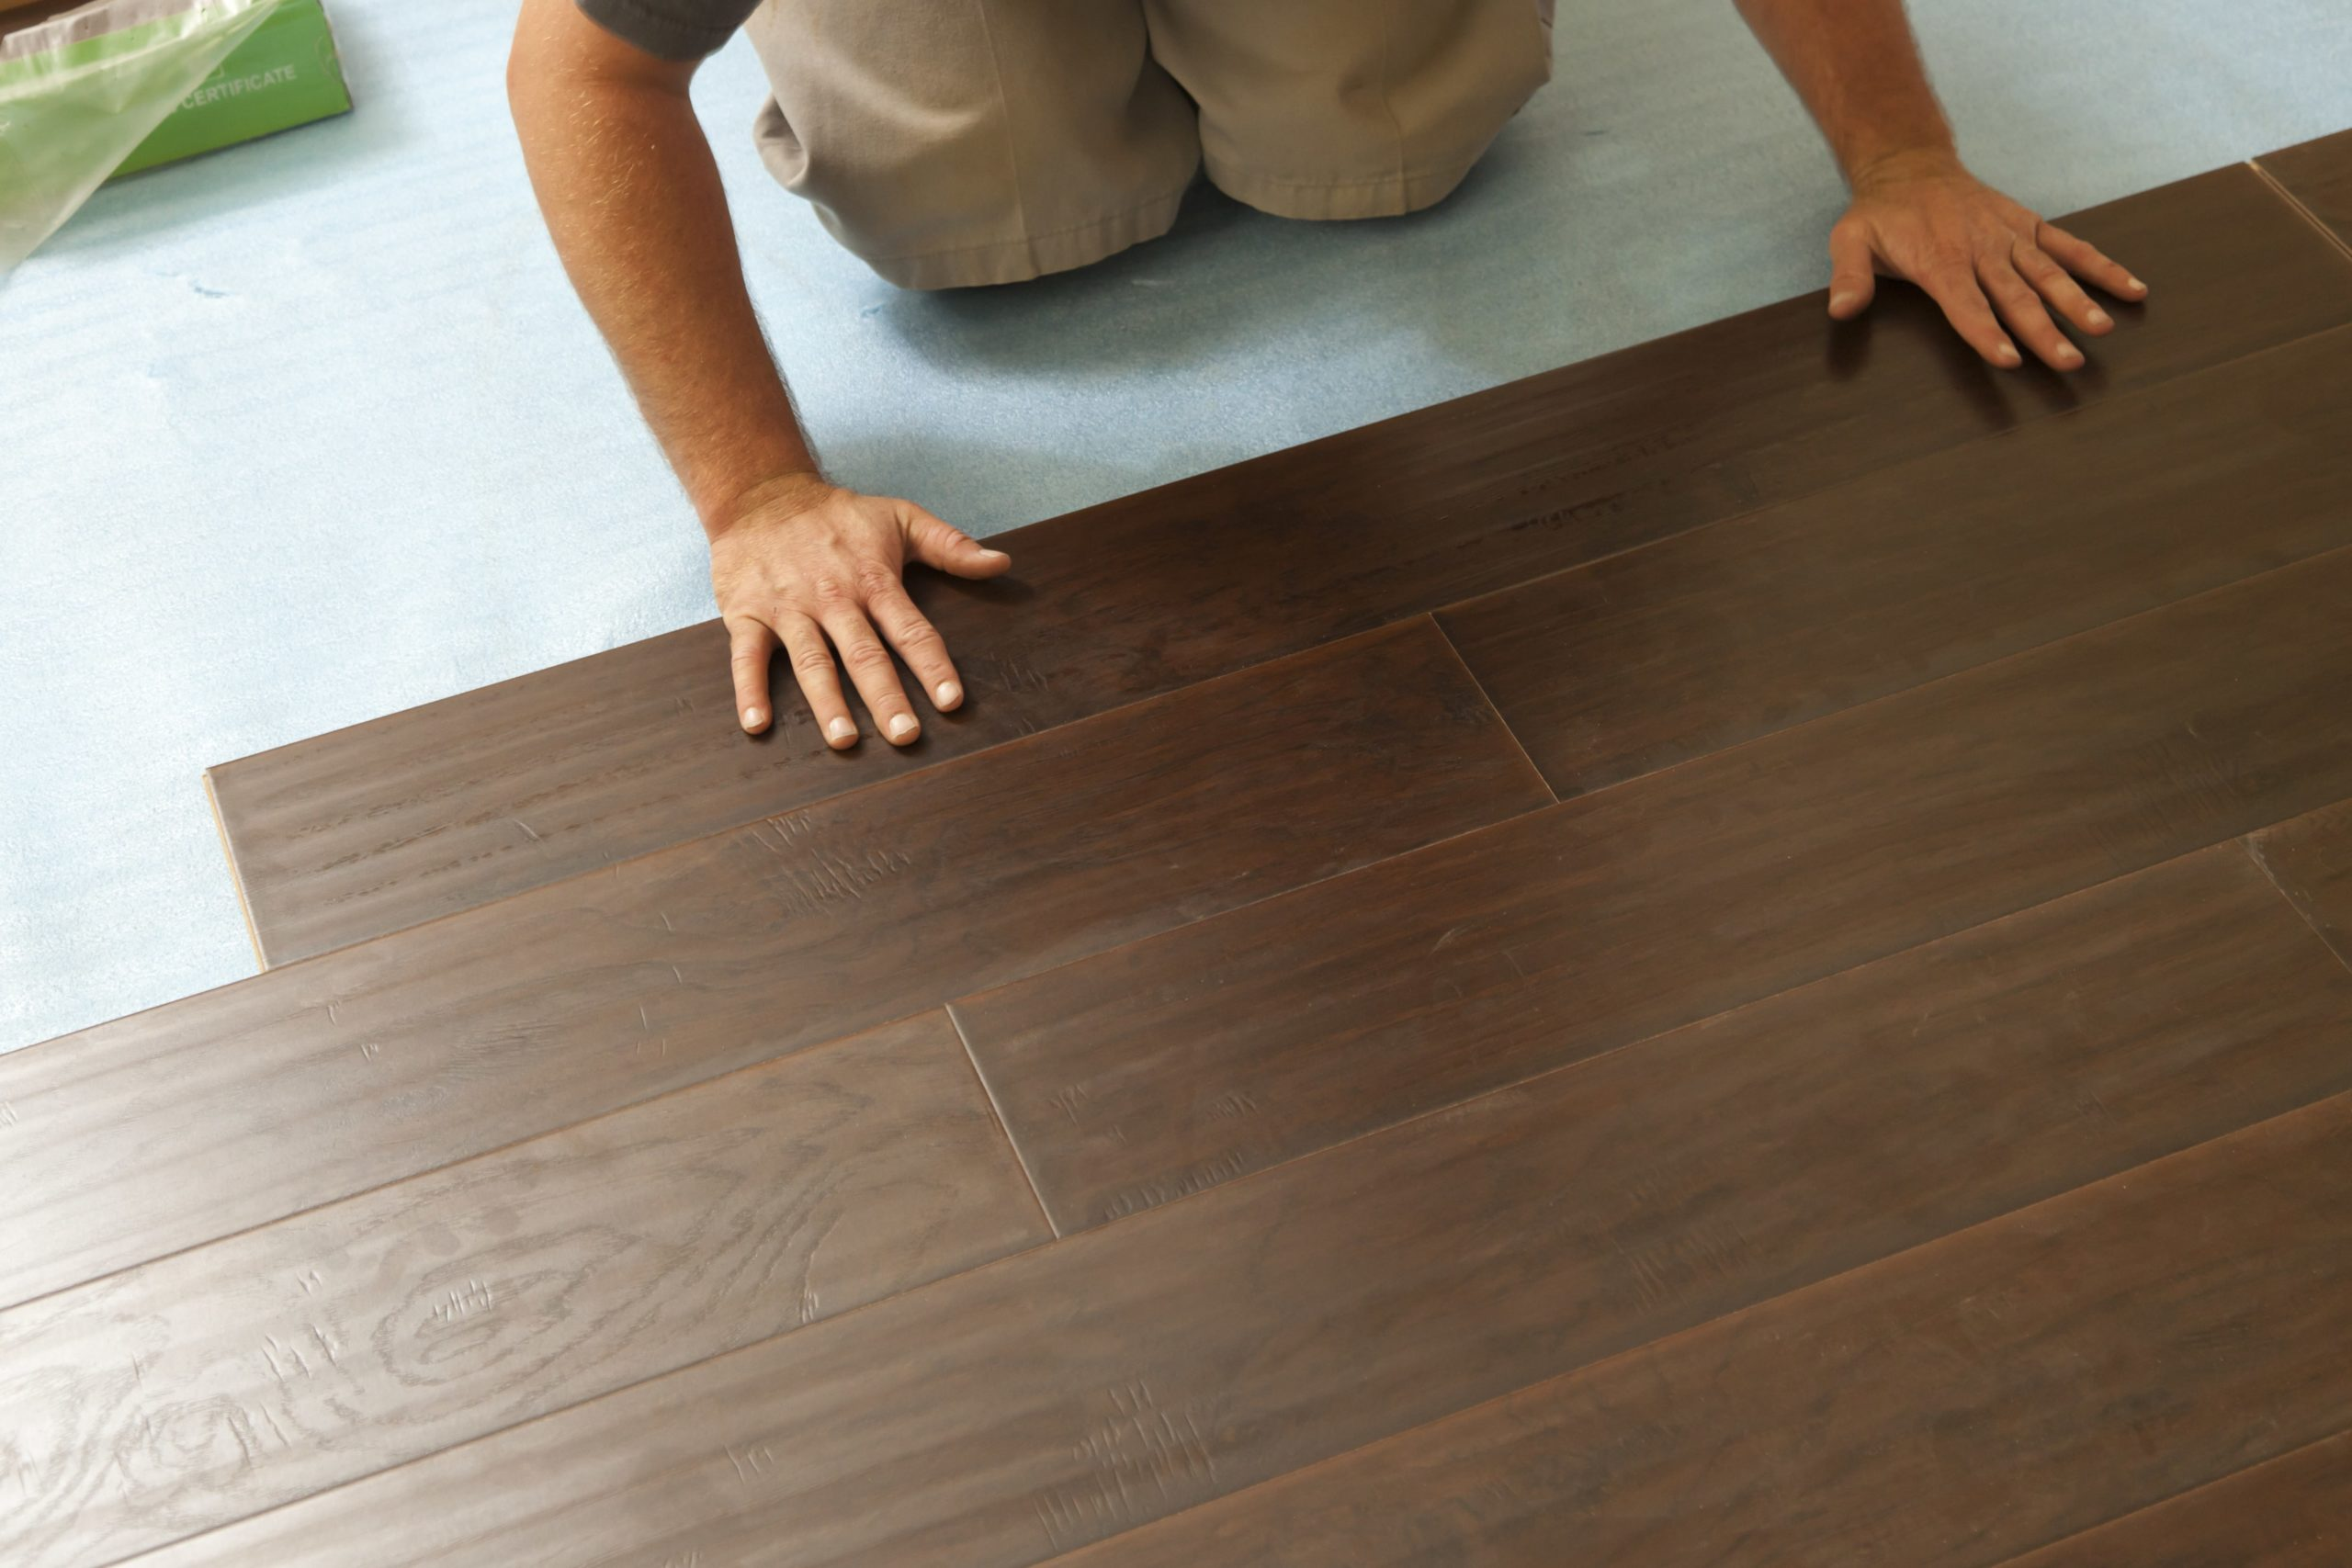 A contractor setting up vinyl floor